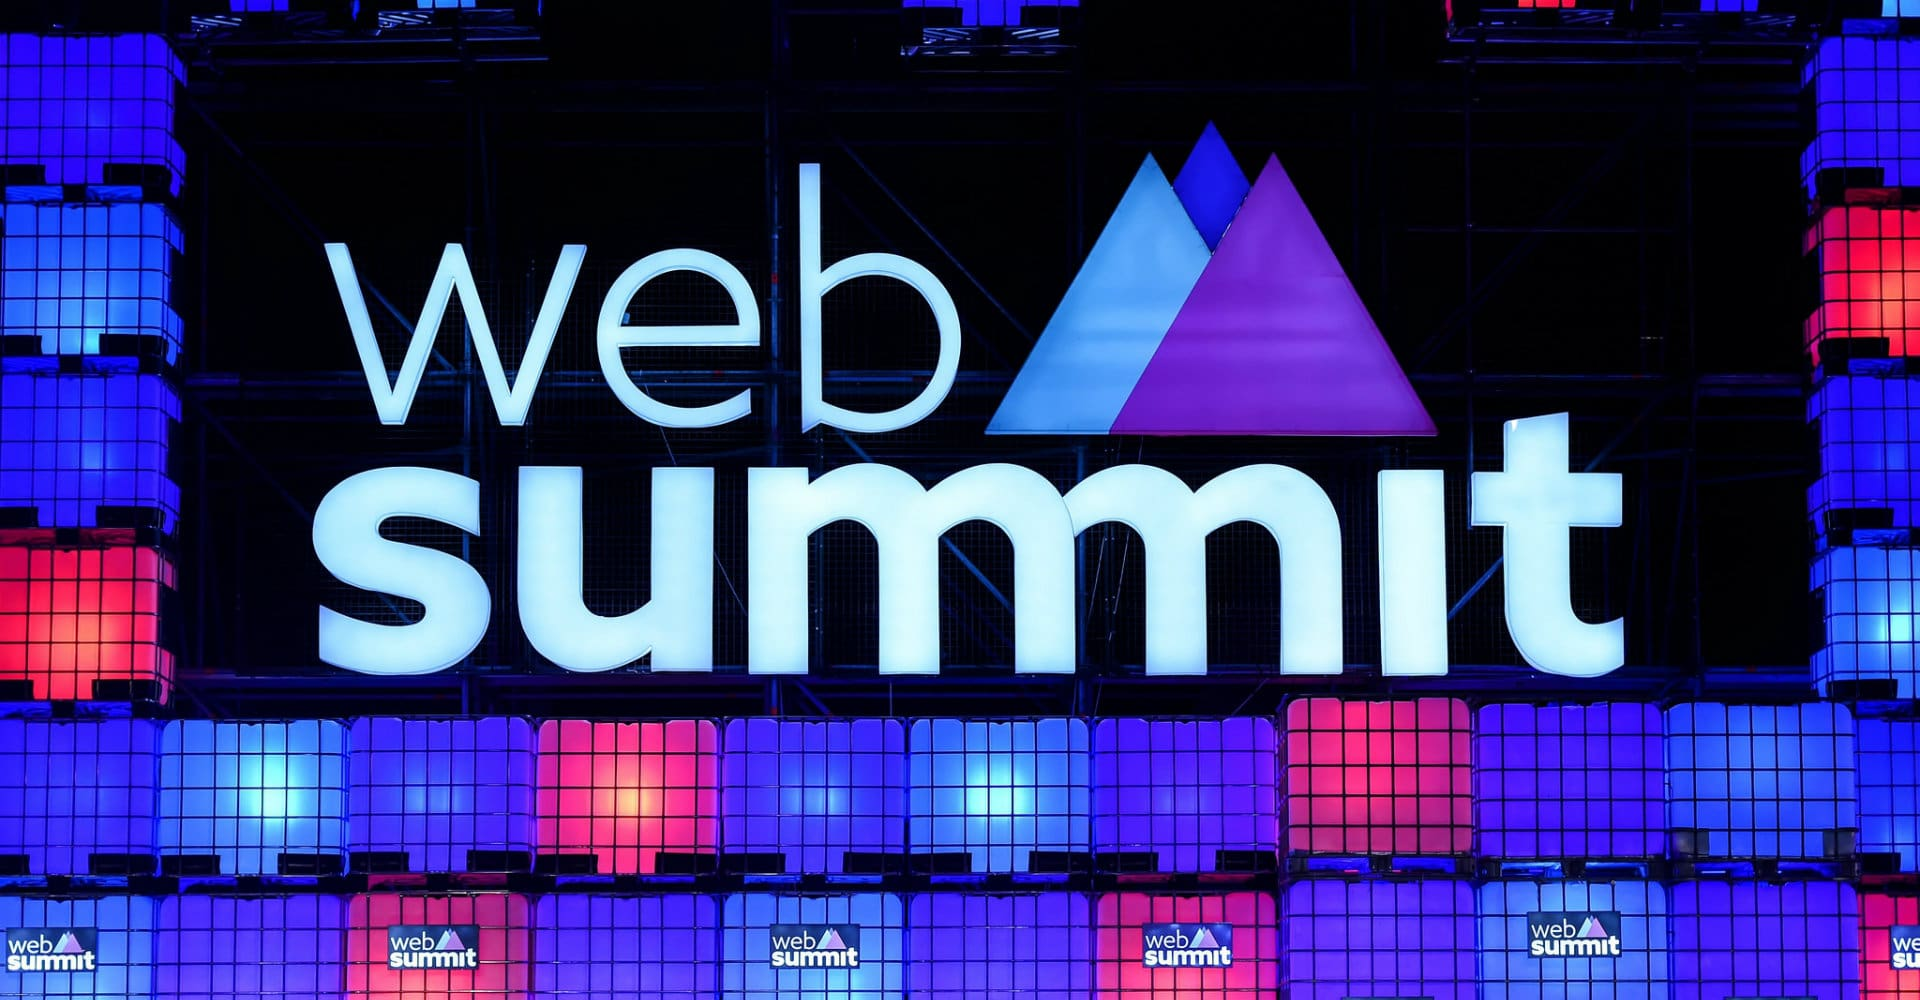 WebSummit2017_1920x1000